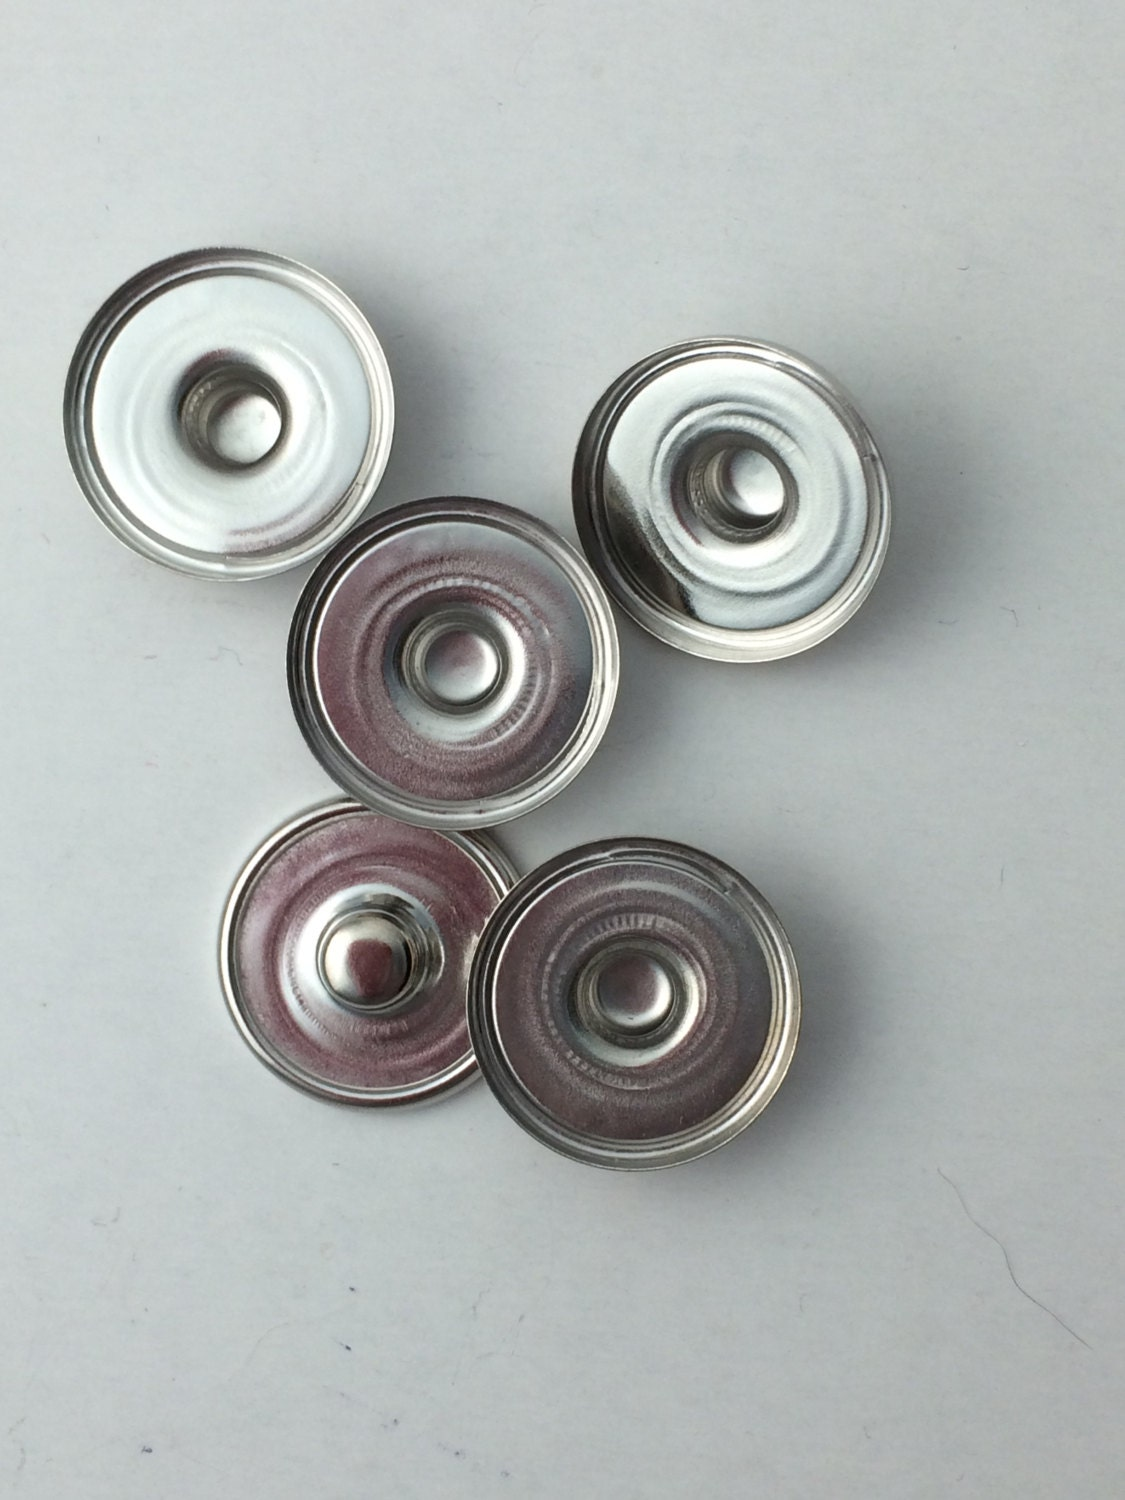 Snap Jewelry Blanks For The Diyer From Mosnap On Etsy